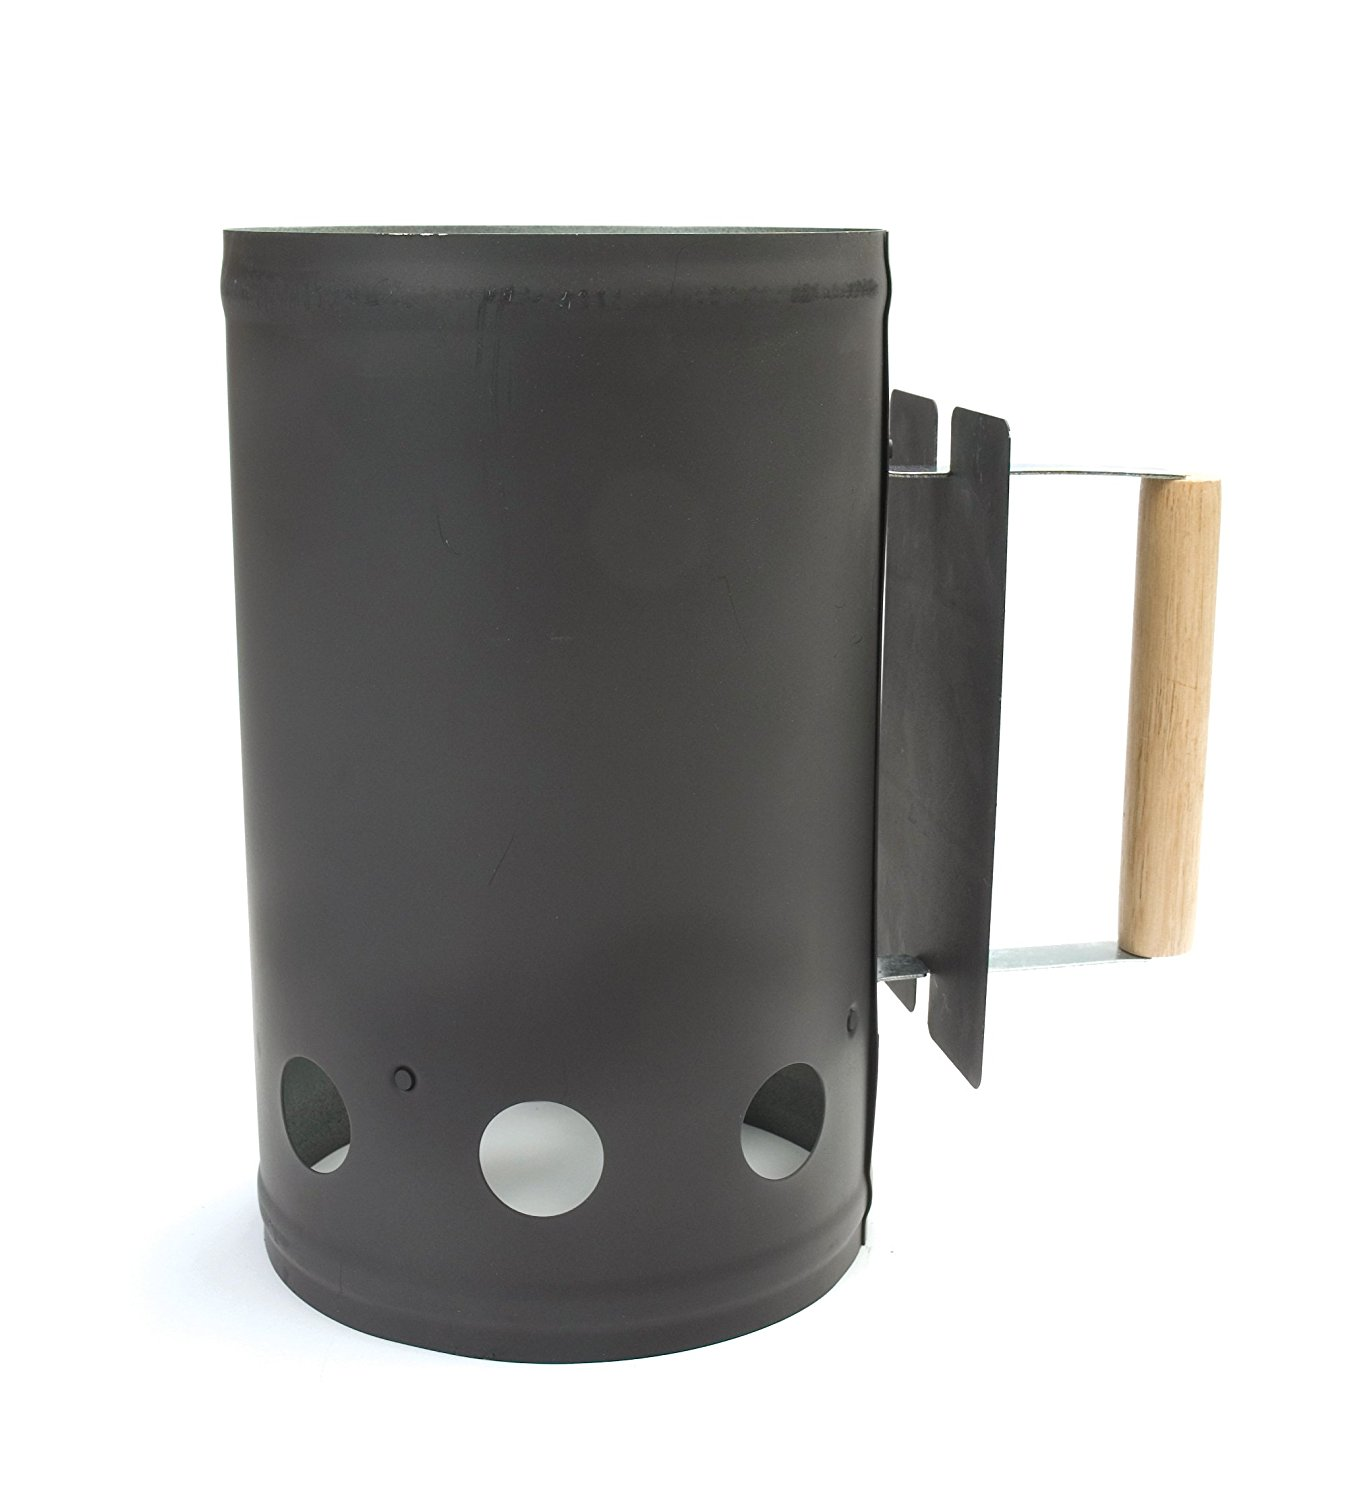 Charcoal Companion Black Chimney Charcoal Starter with Hardwood Handle